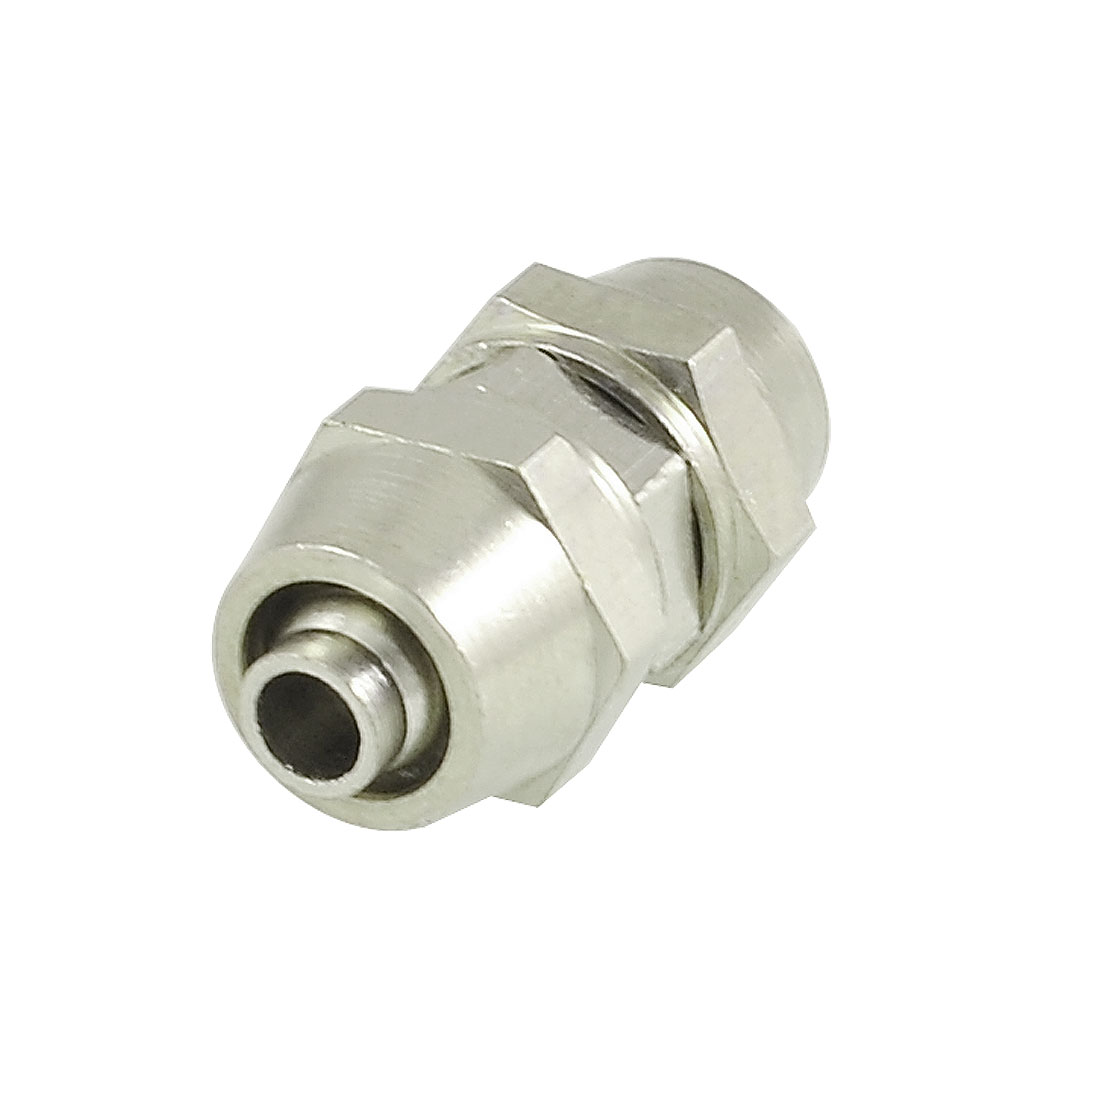 Pneumatic Air Tube Straight Quick Coupler Coupling Connector 5.5mm x 8mm